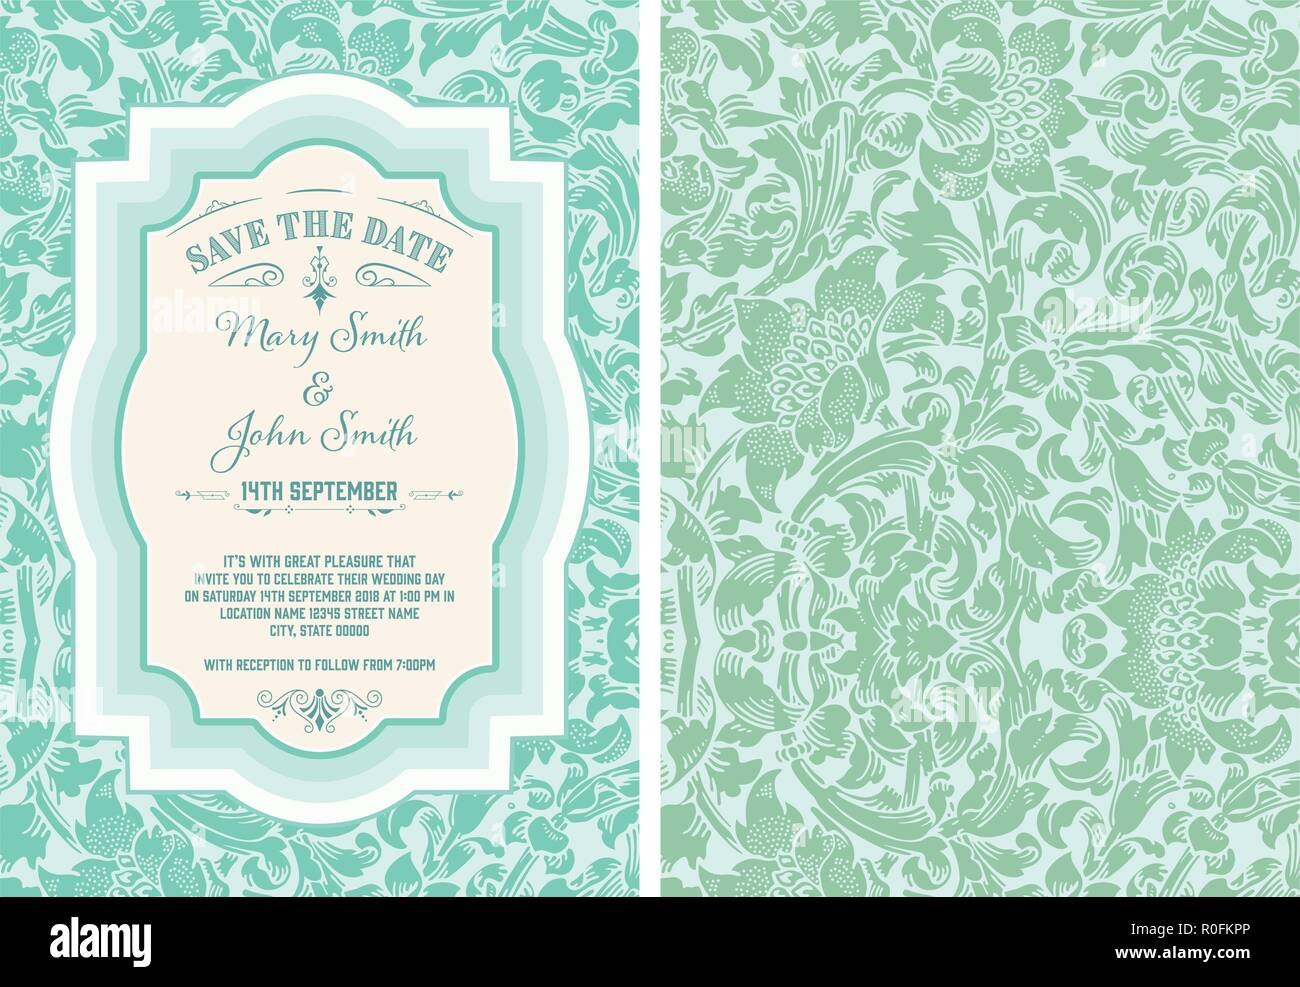 vintage save the date layout stock vector art illustration vector